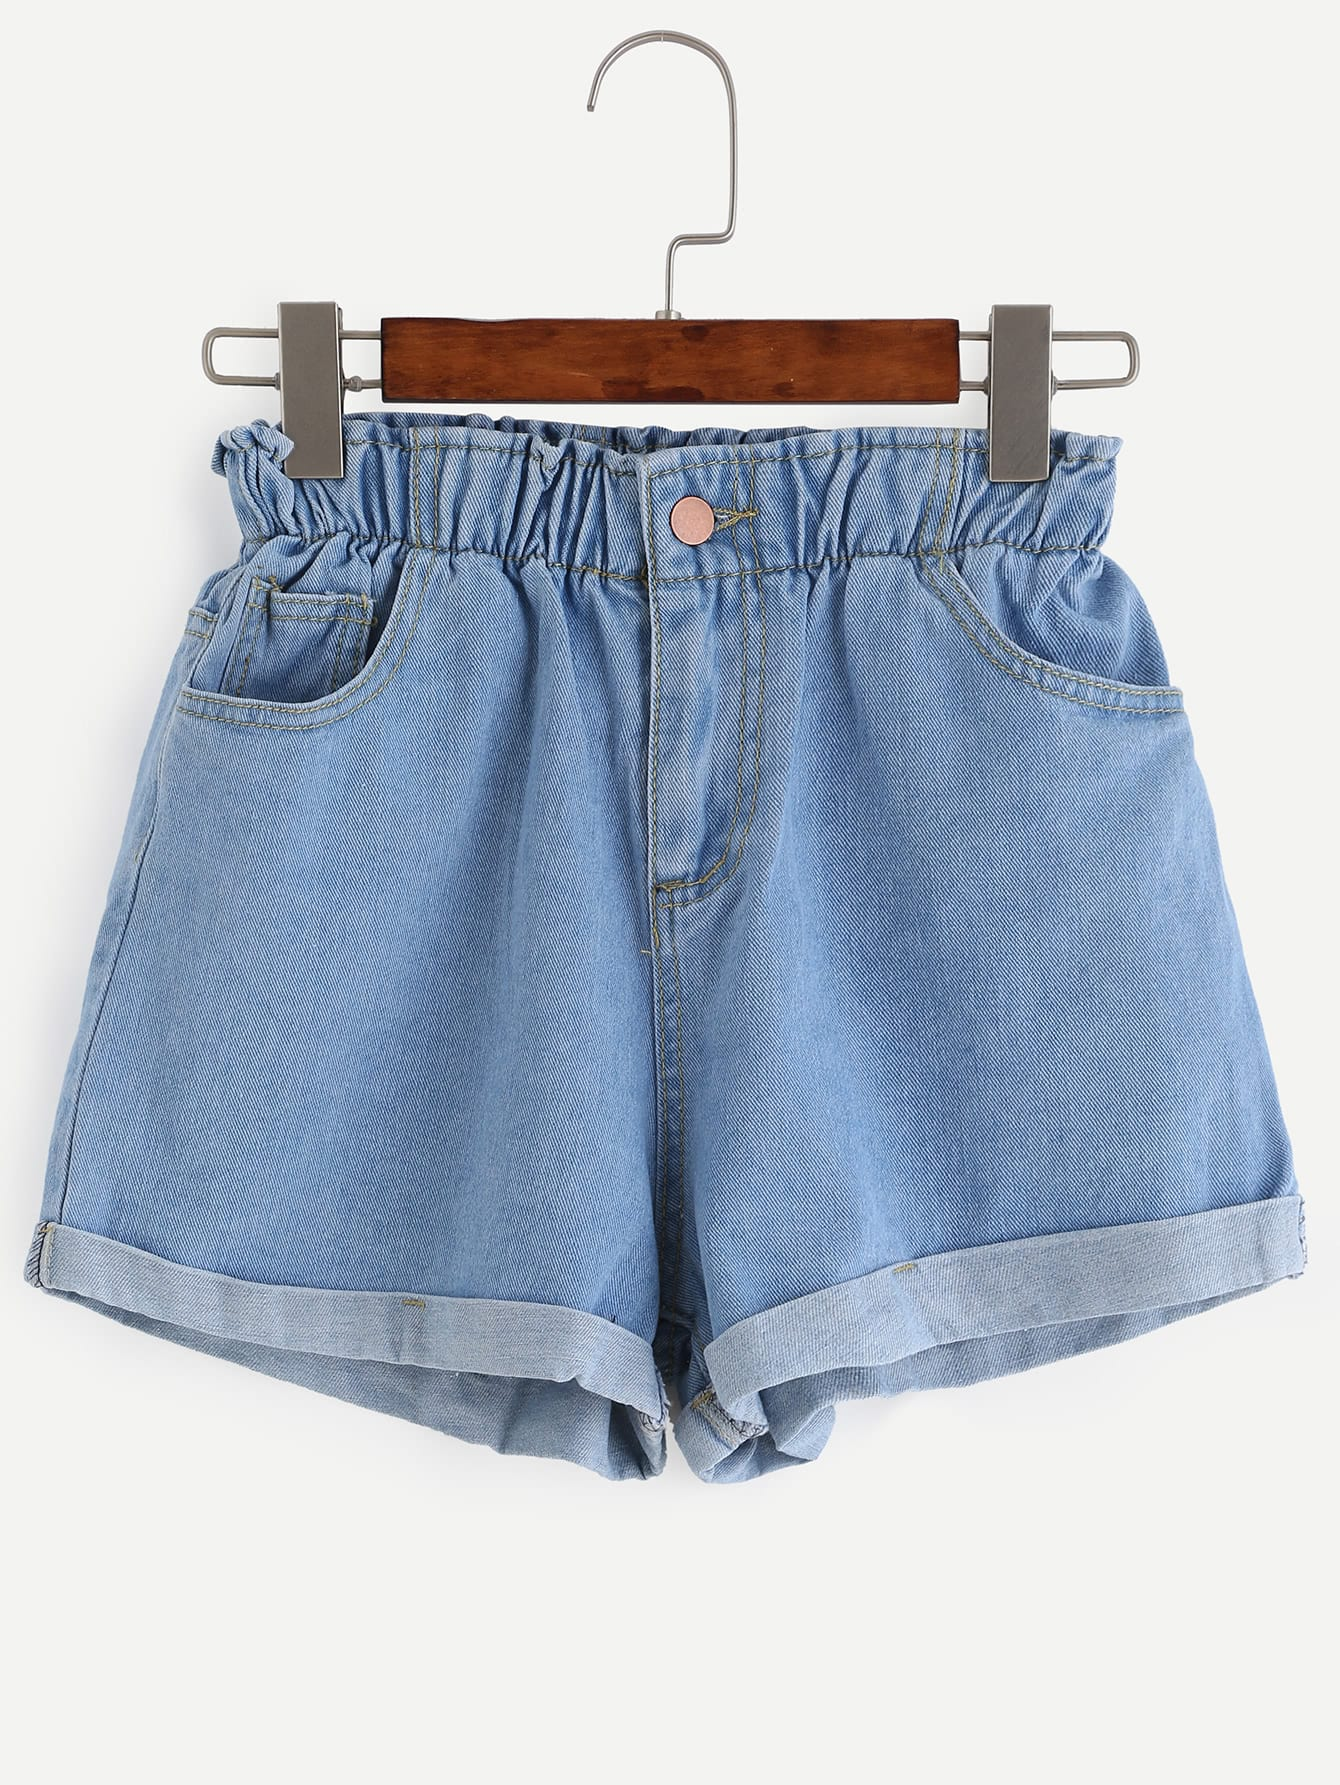 Free shipping BOTH ways on womens elastic waist shorts, from our vast selection of styles. Fast delivery, and 24/7/ real-person service with a smile. Click or call